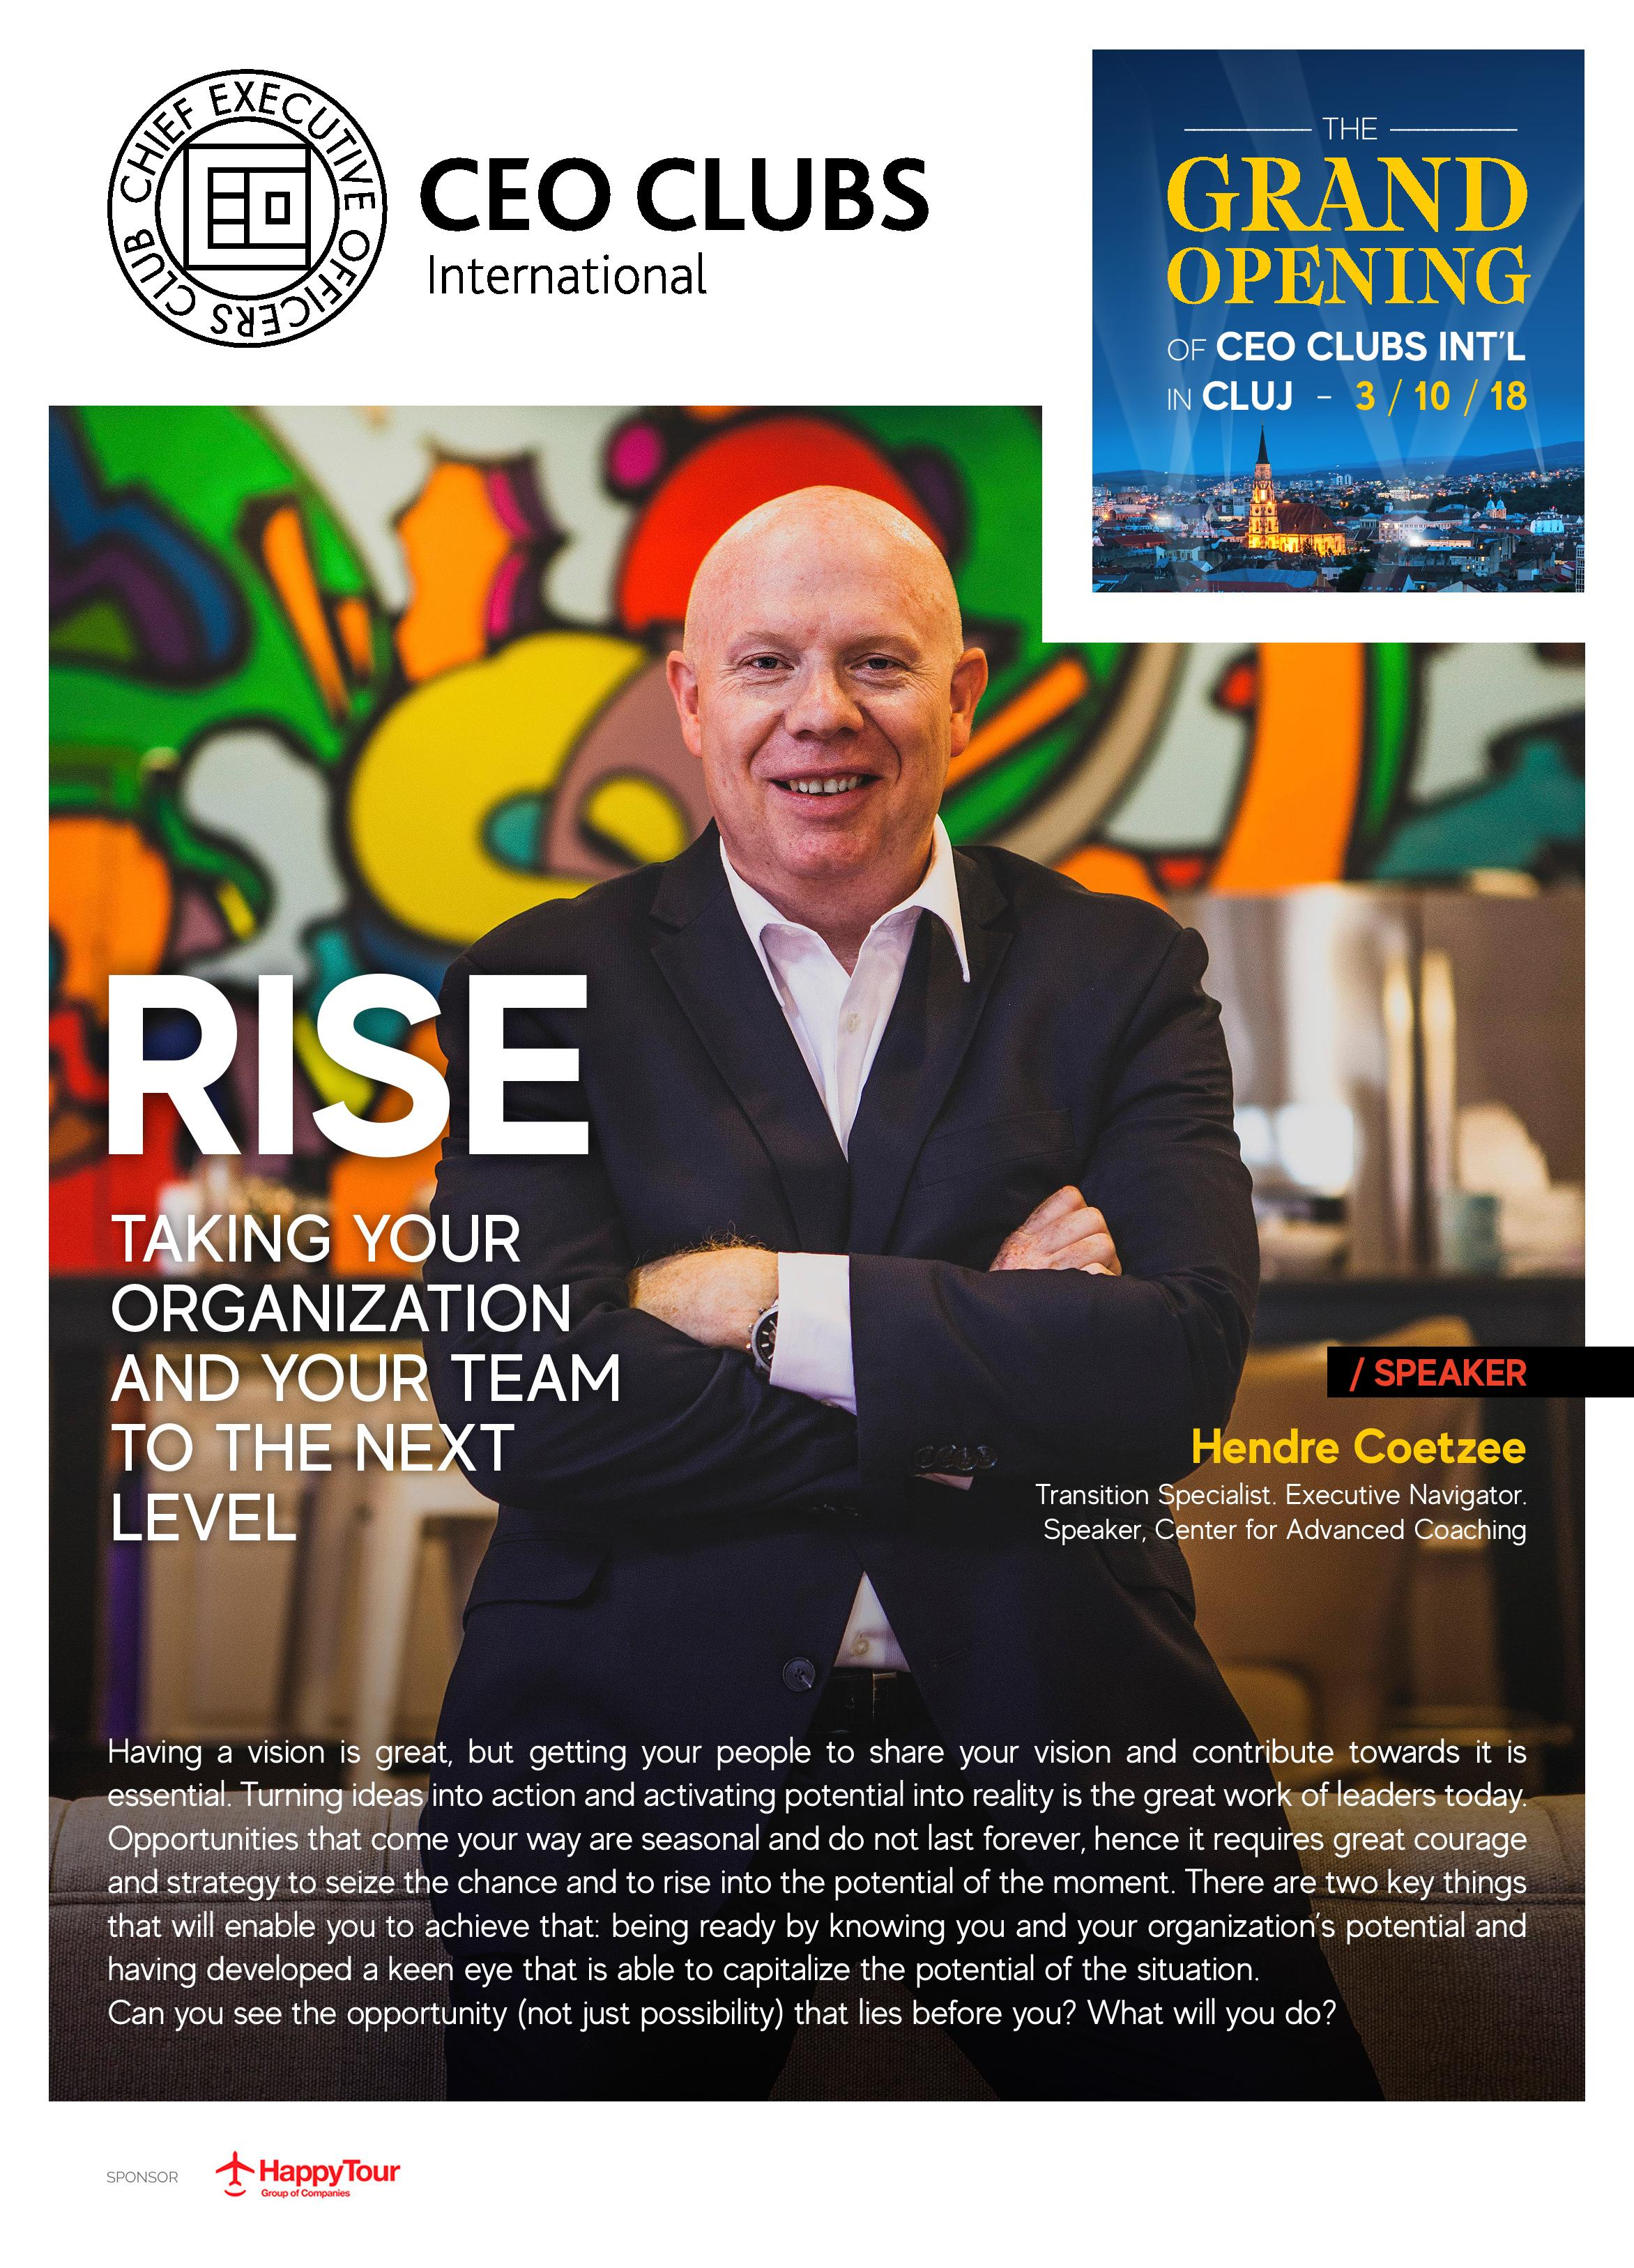 RISE Taking your organization and your team to the next level